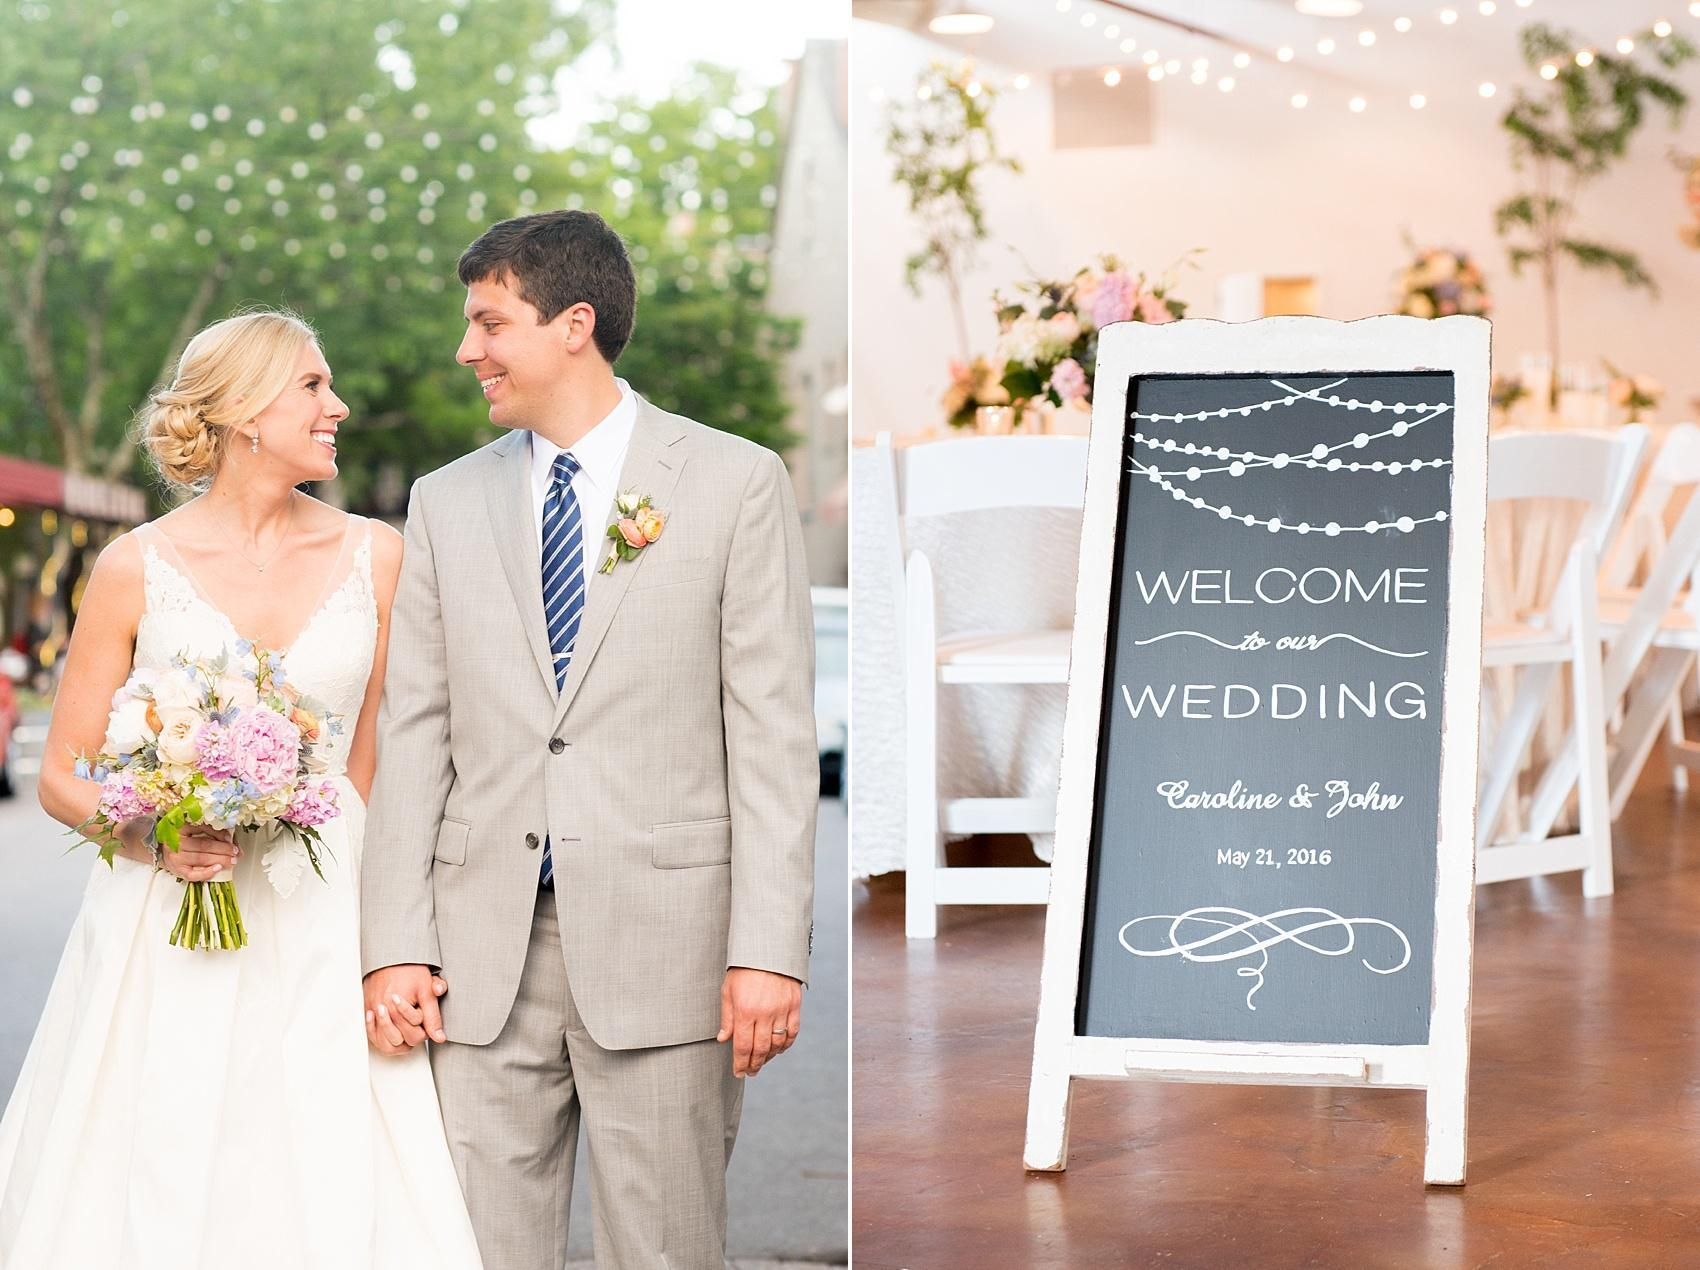 Mikkel Paige Photography photos of a downtown Raleigh Market Hall wedding with pictures of the bride and groom and bistro lights and custom chalkboard welcome sign from AB Chalk Designs.